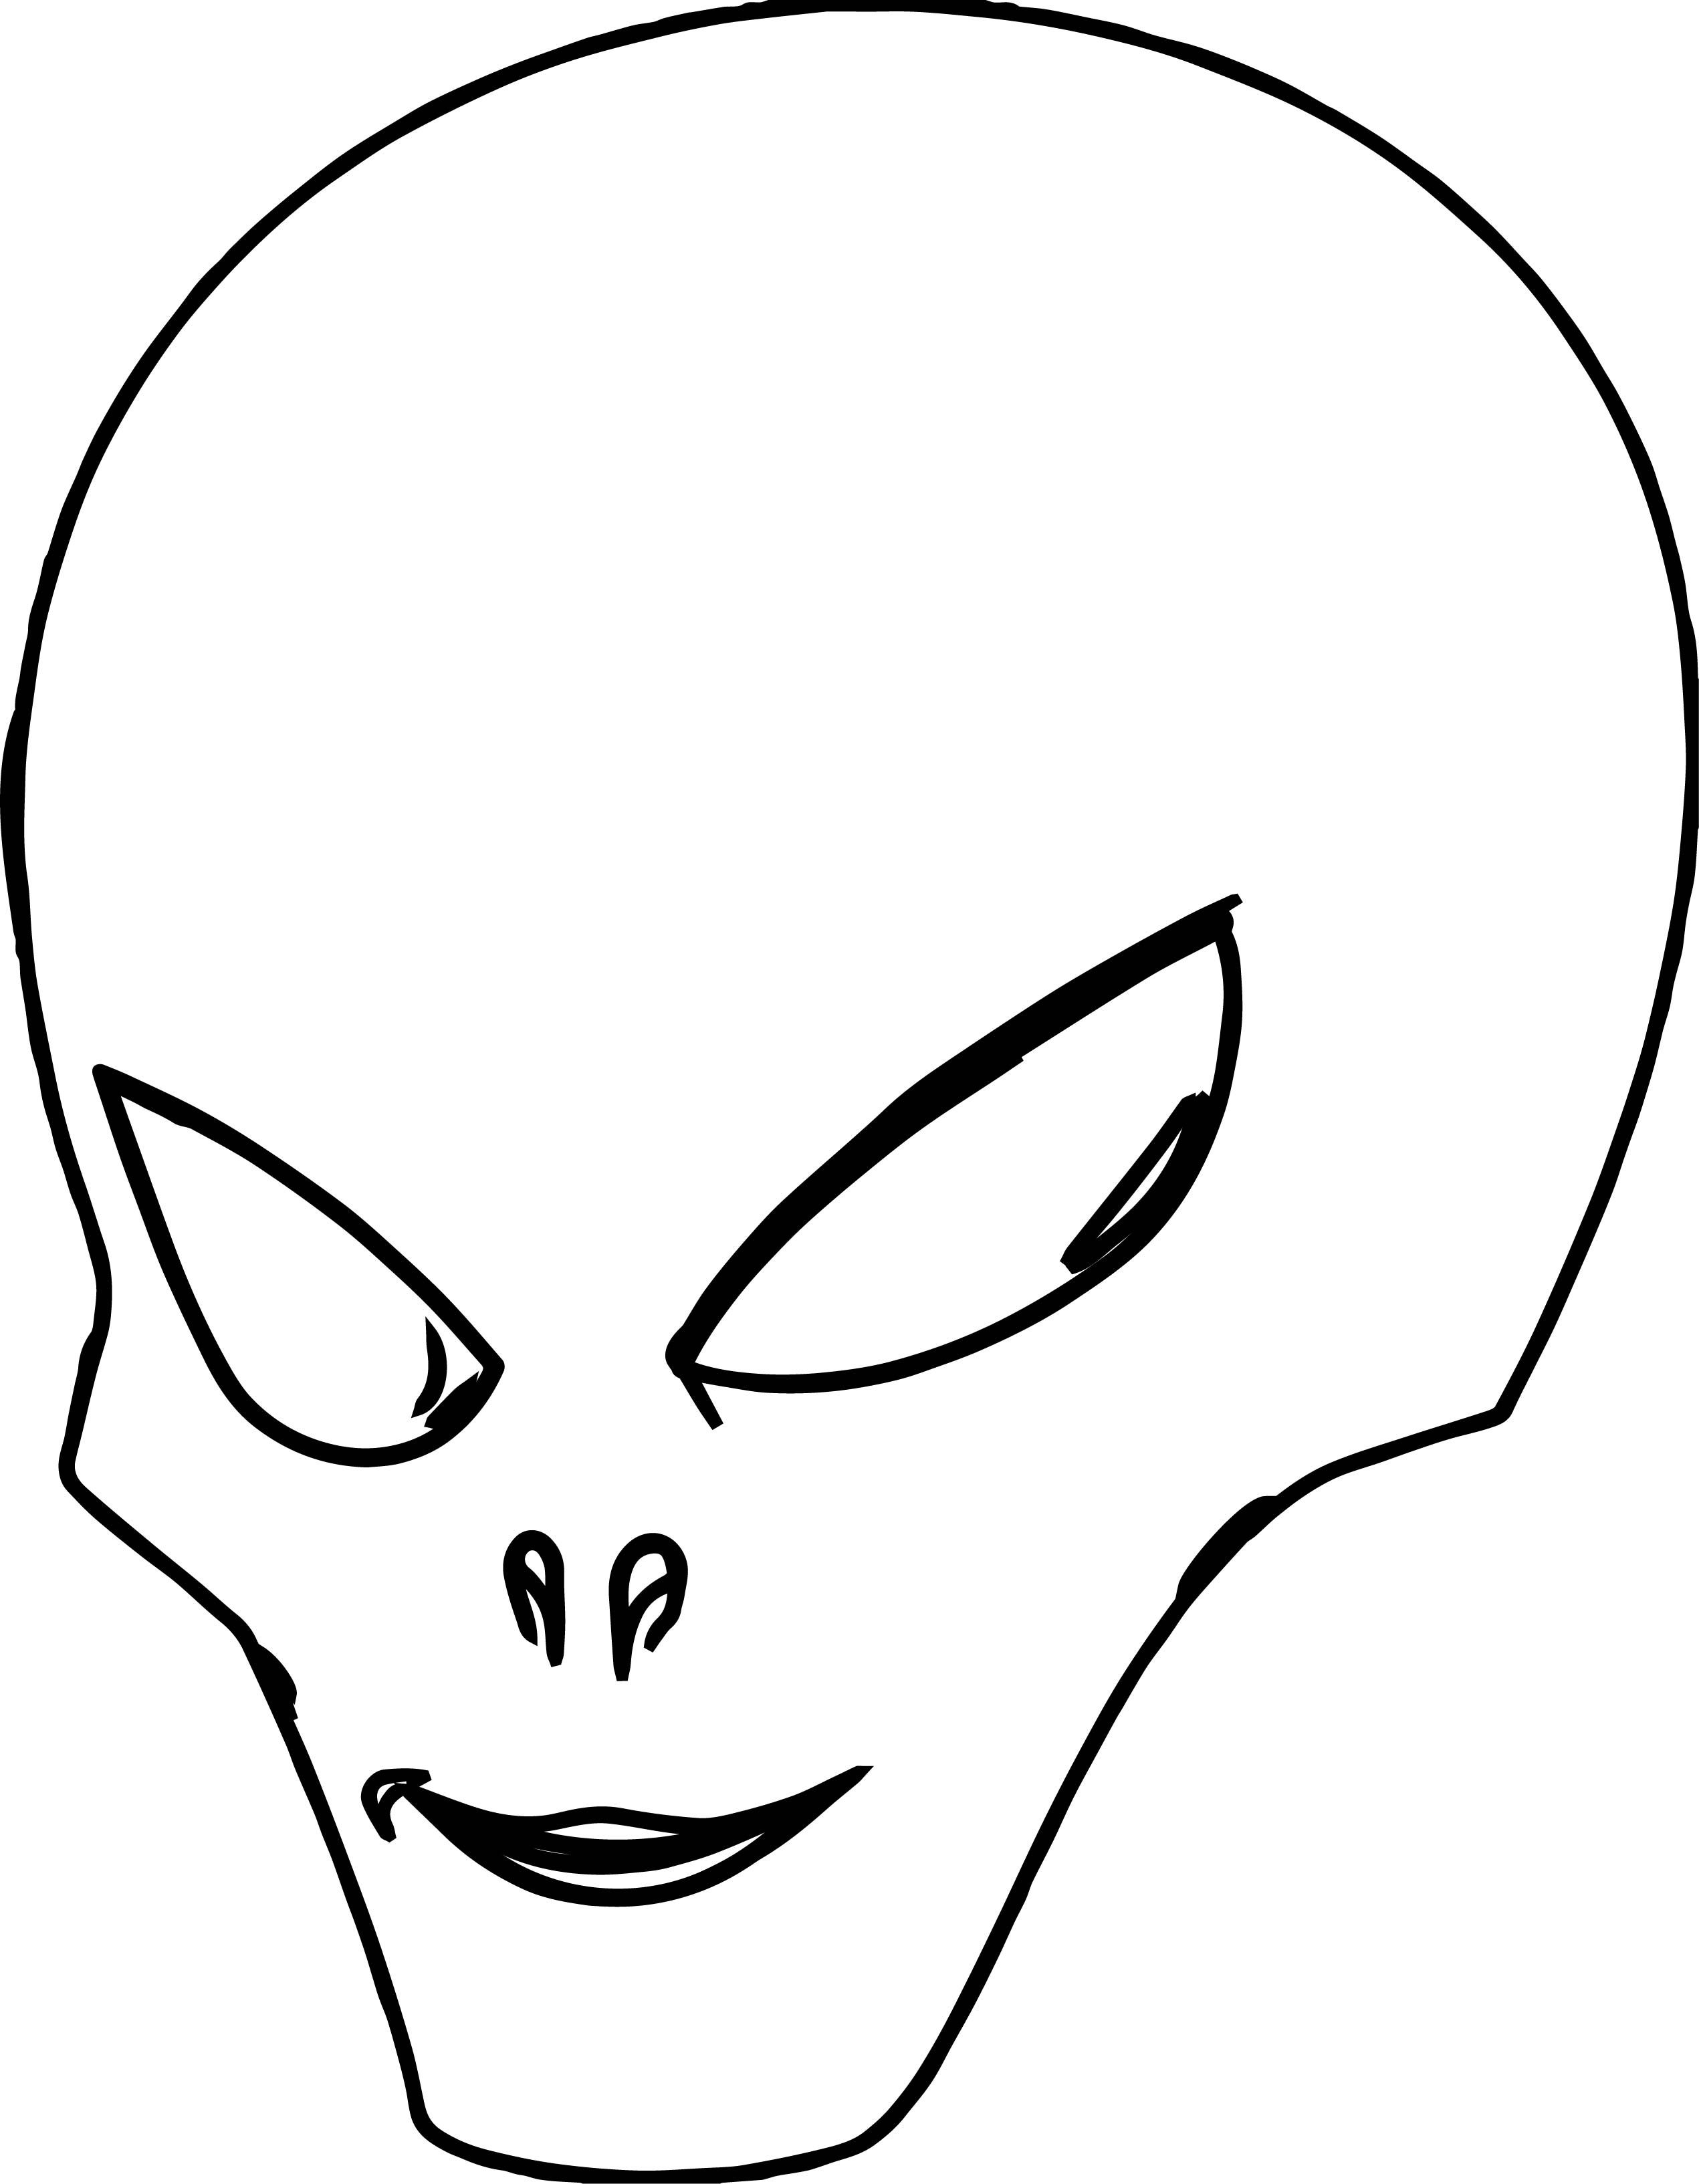 cool Alien Head Coloring Page Coloring pages, Coloring